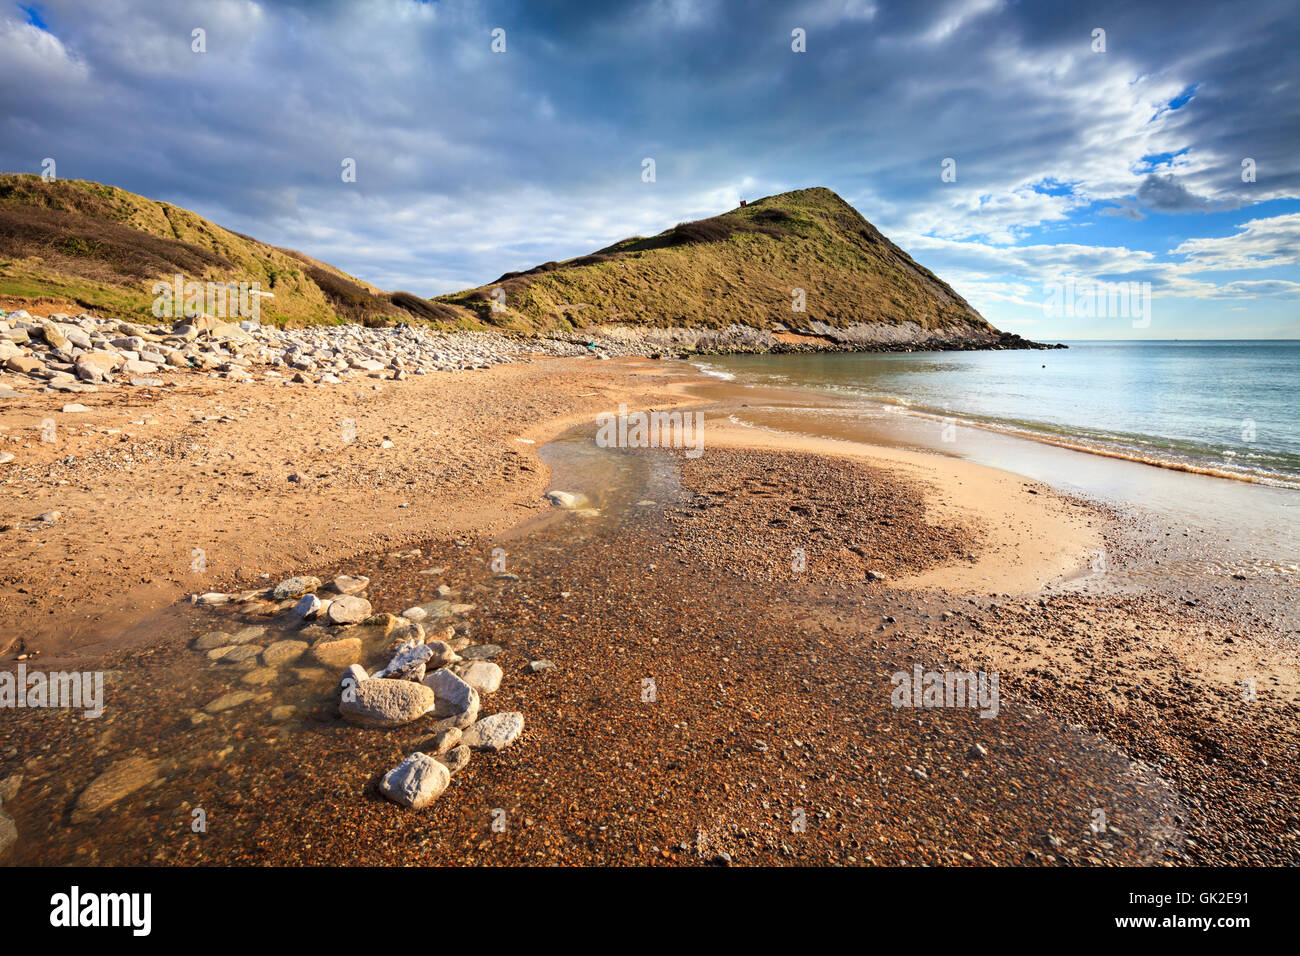 Worbarrow Tout on the Isle of Purbeck, Dorset - Stock Image